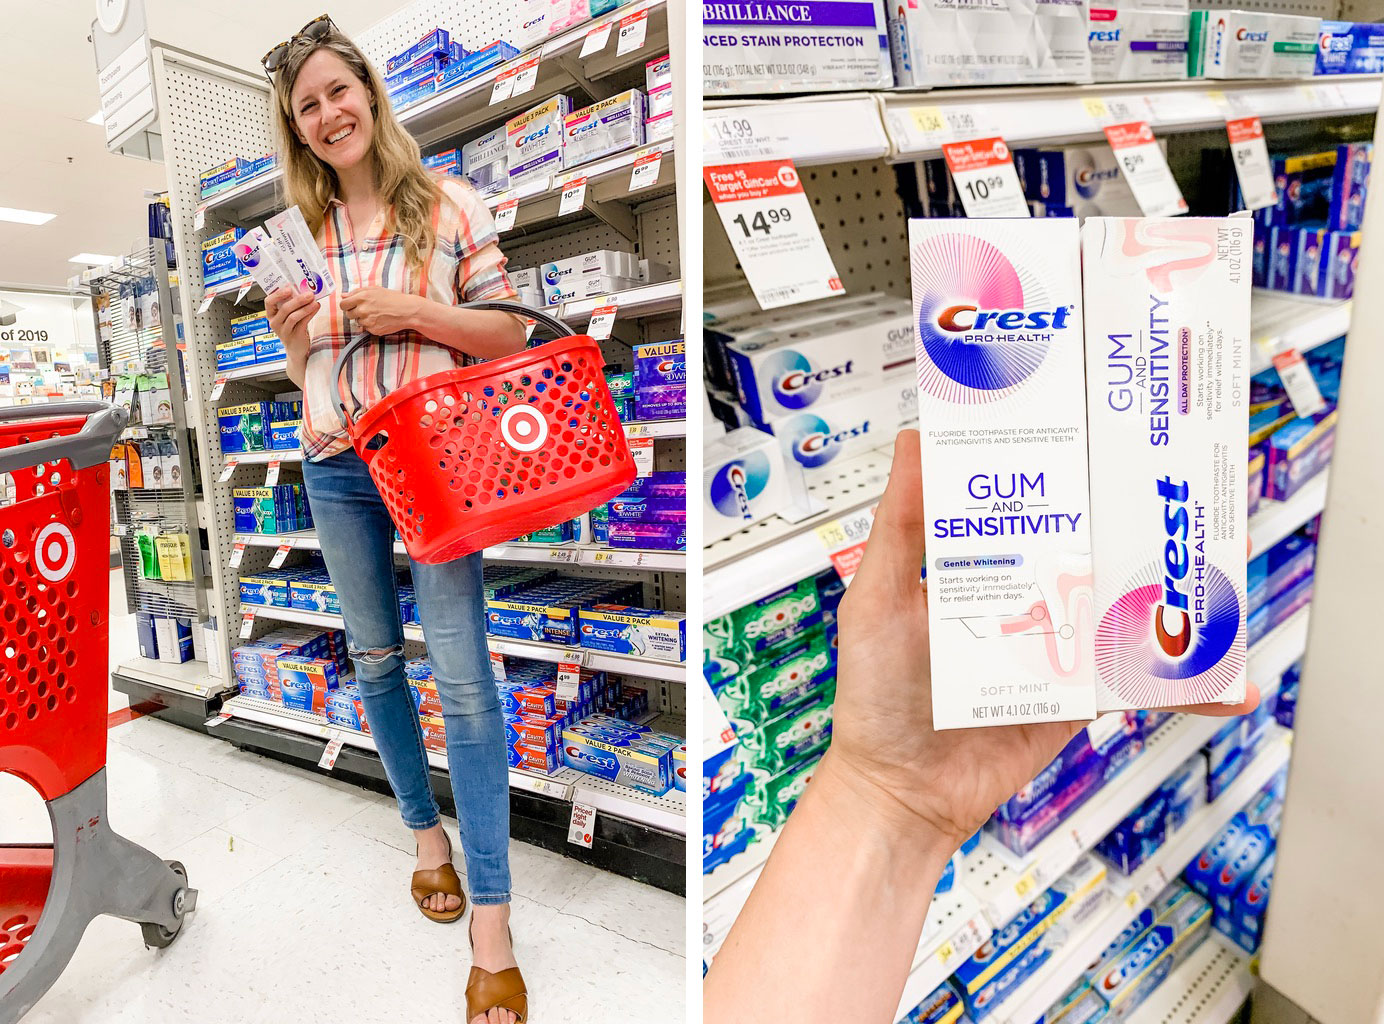 #ad Save $2 on new Crest Gum Sensitivity at Target